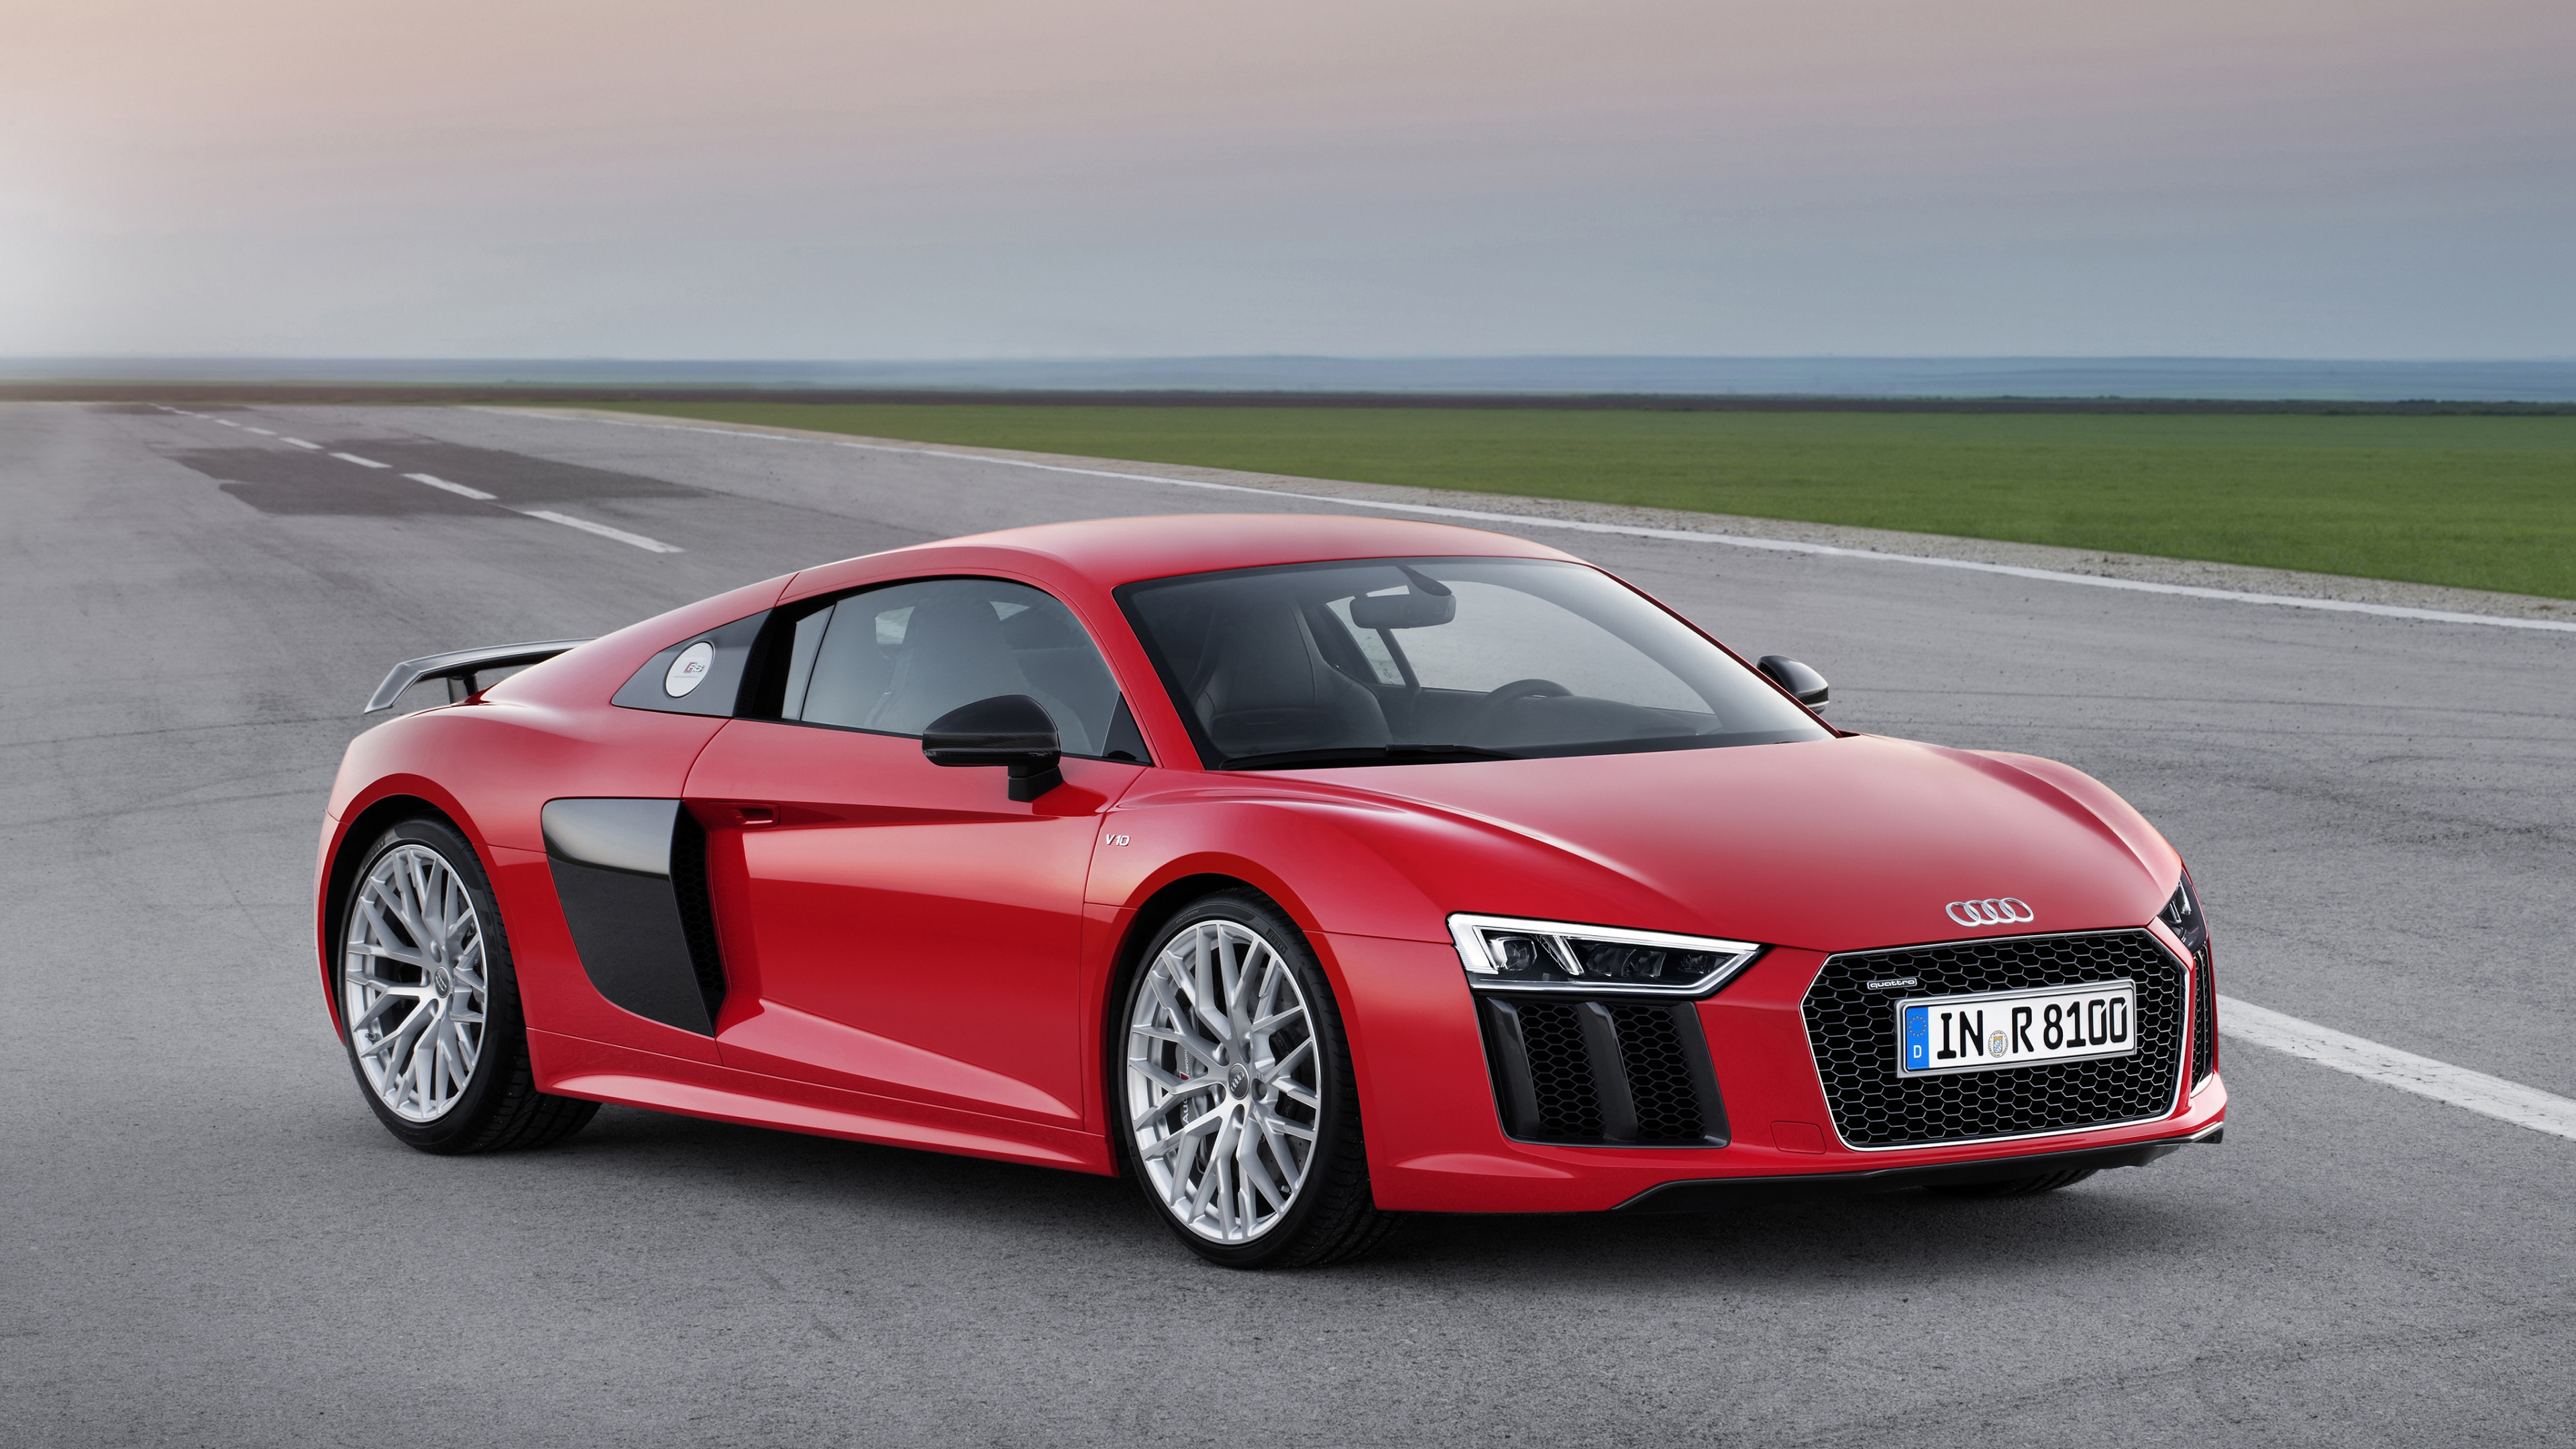 Download Wallpaper 3840x2160 Audi R8 V10 Red 2015 4K Ultra HD HD 3840x2160